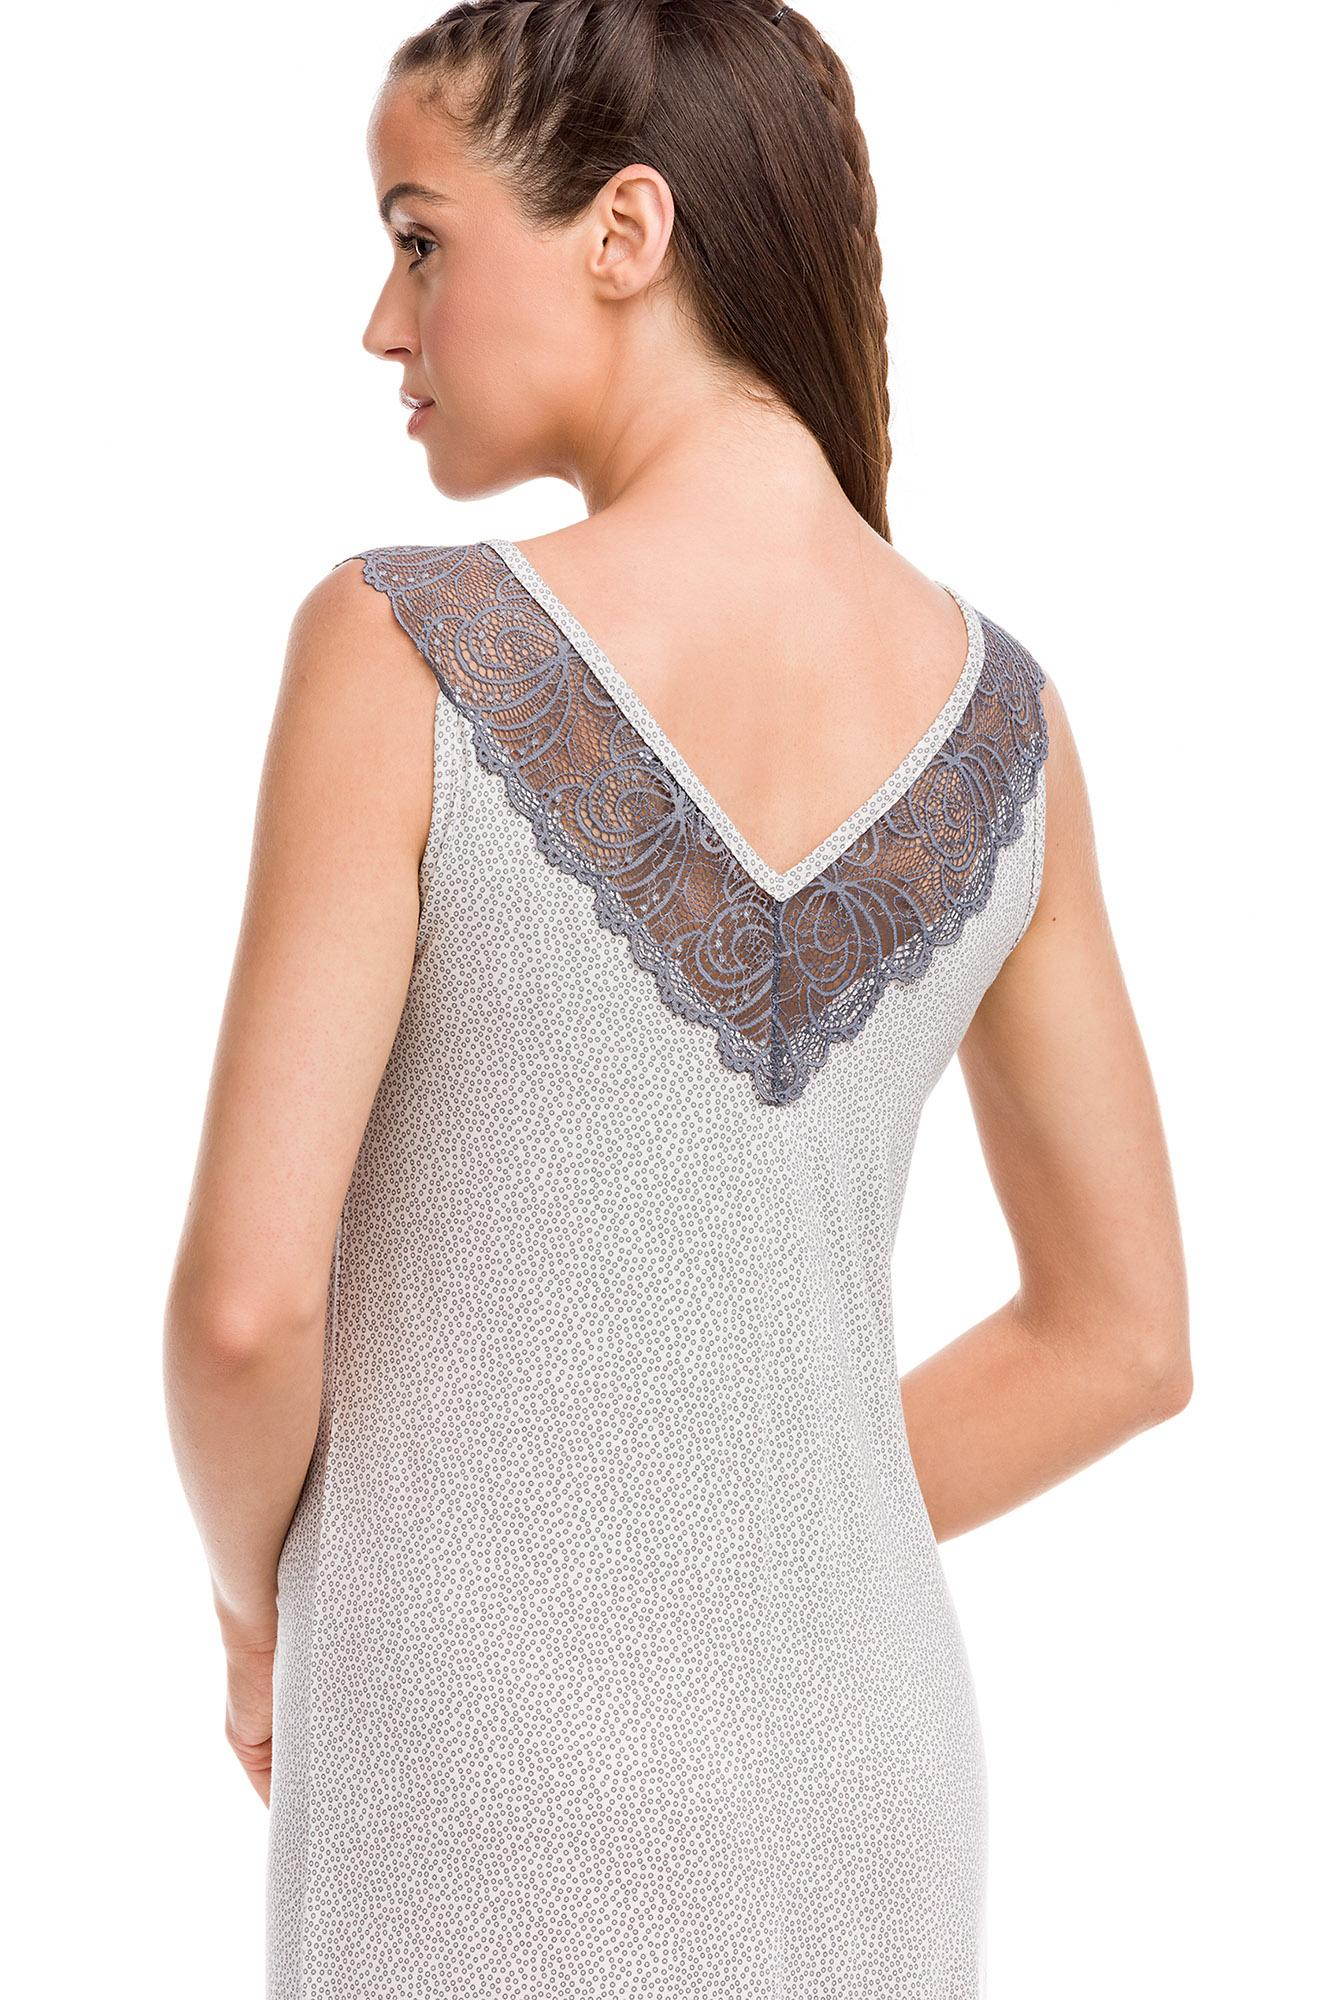 Women's Nightgown